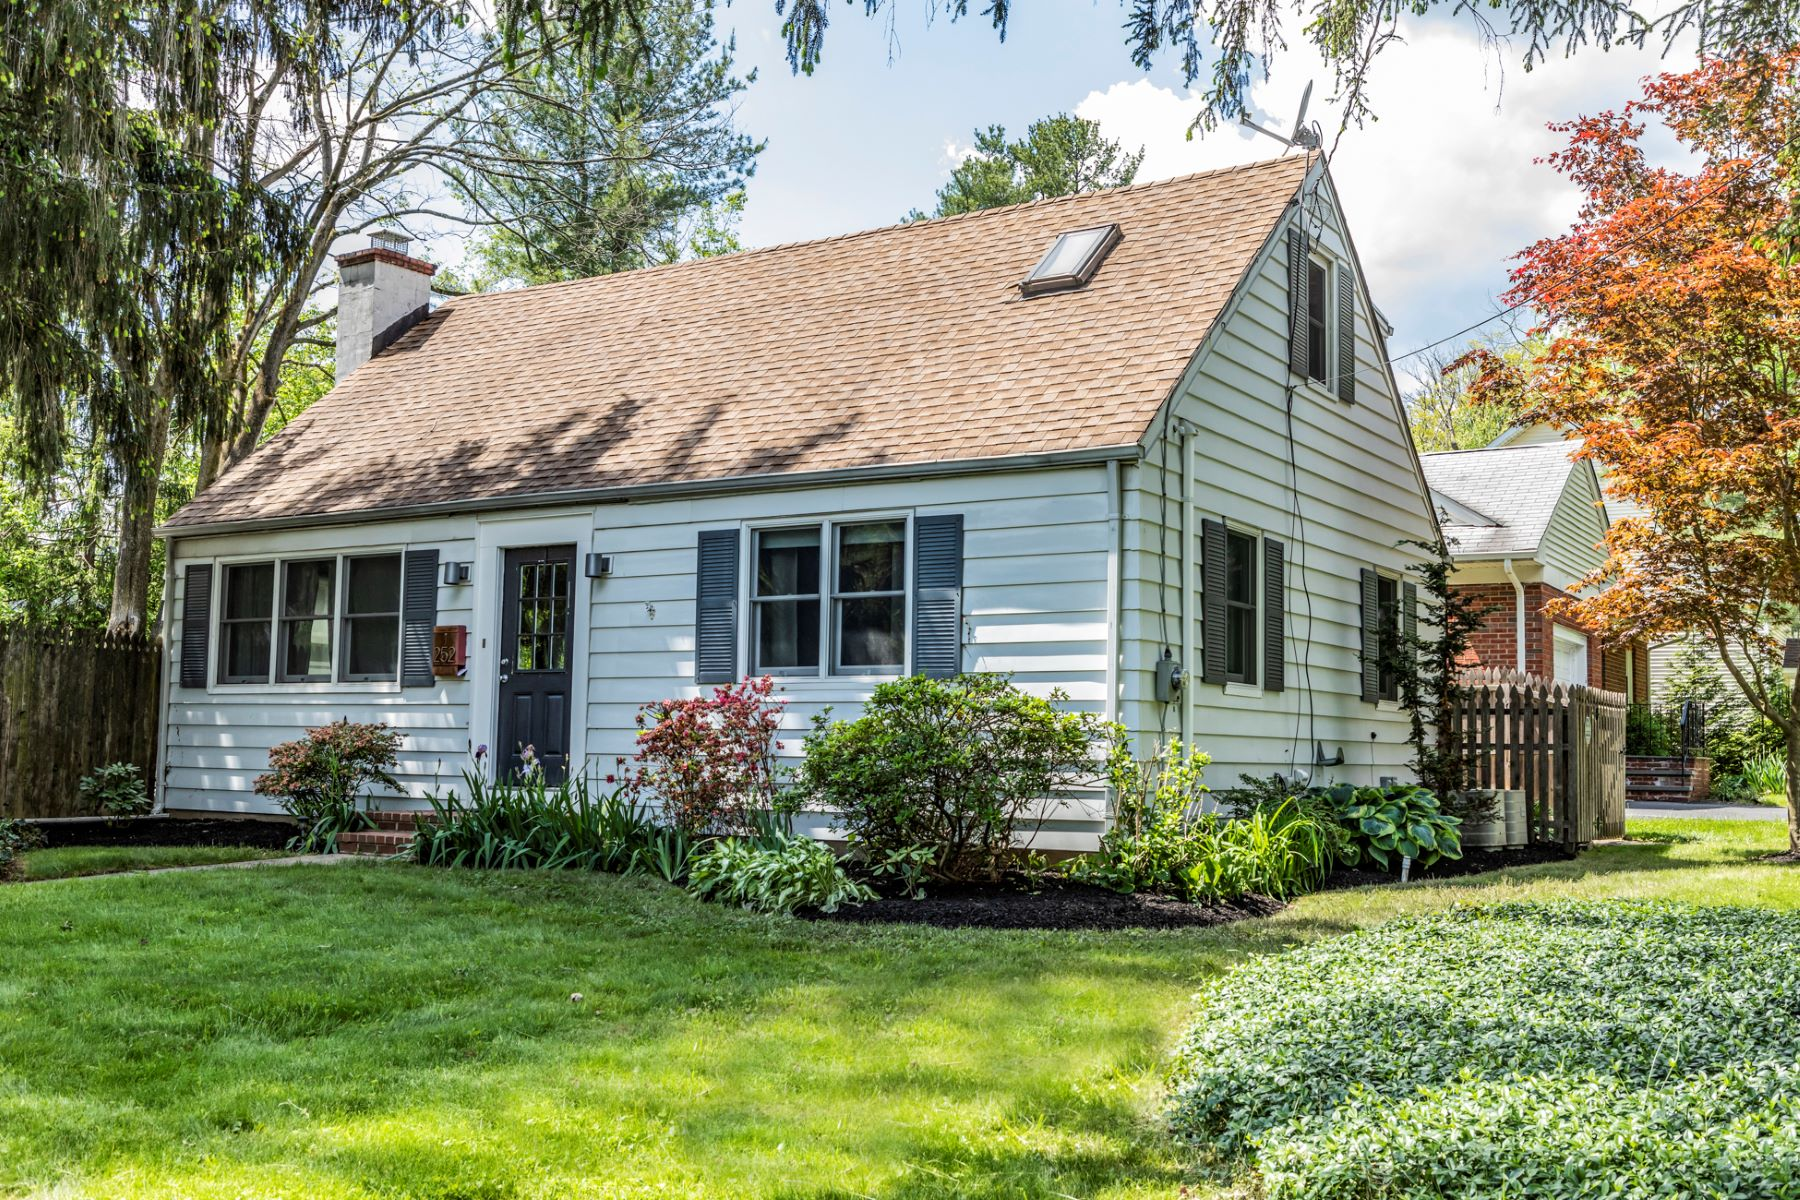 Single Family Homes for Sale at A Modern Redo for In-Town Princeton Cape 252 Hamilton Avenue, Princeton, New Jersey 08540 United States